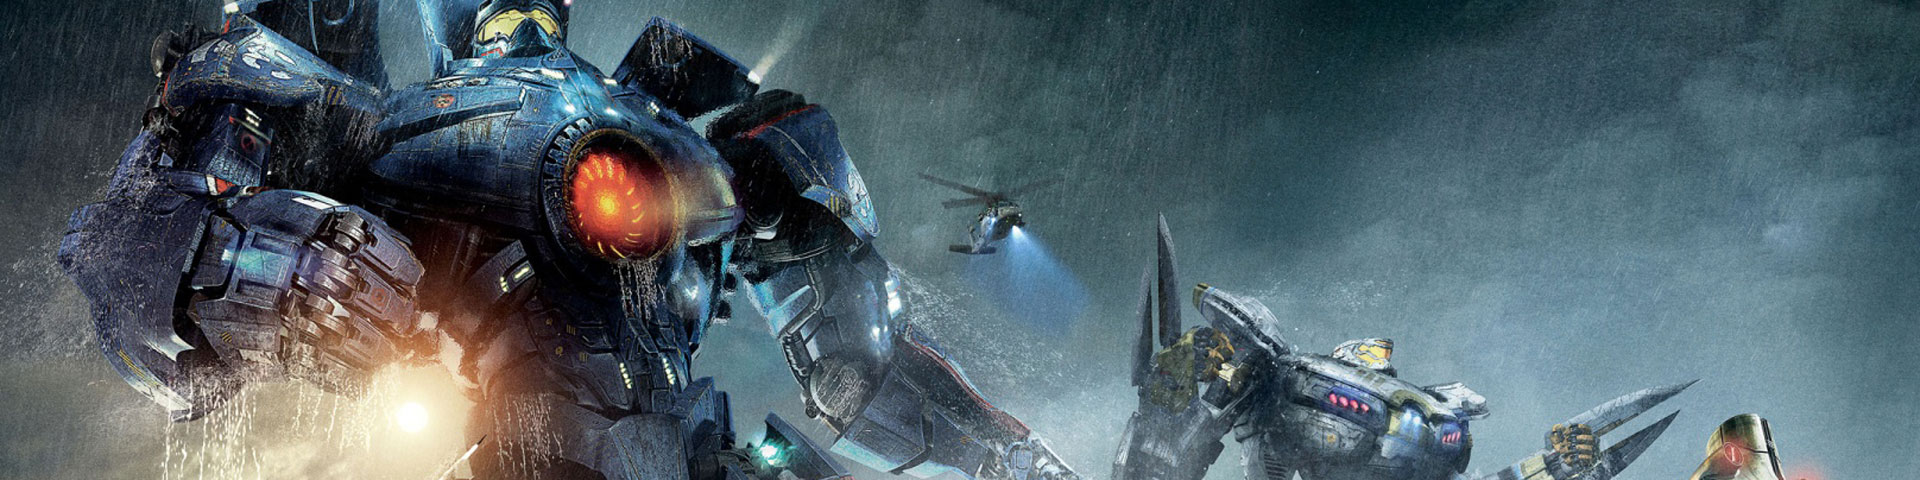 Three giant robots stand in a rain storm, ready to fight anything.